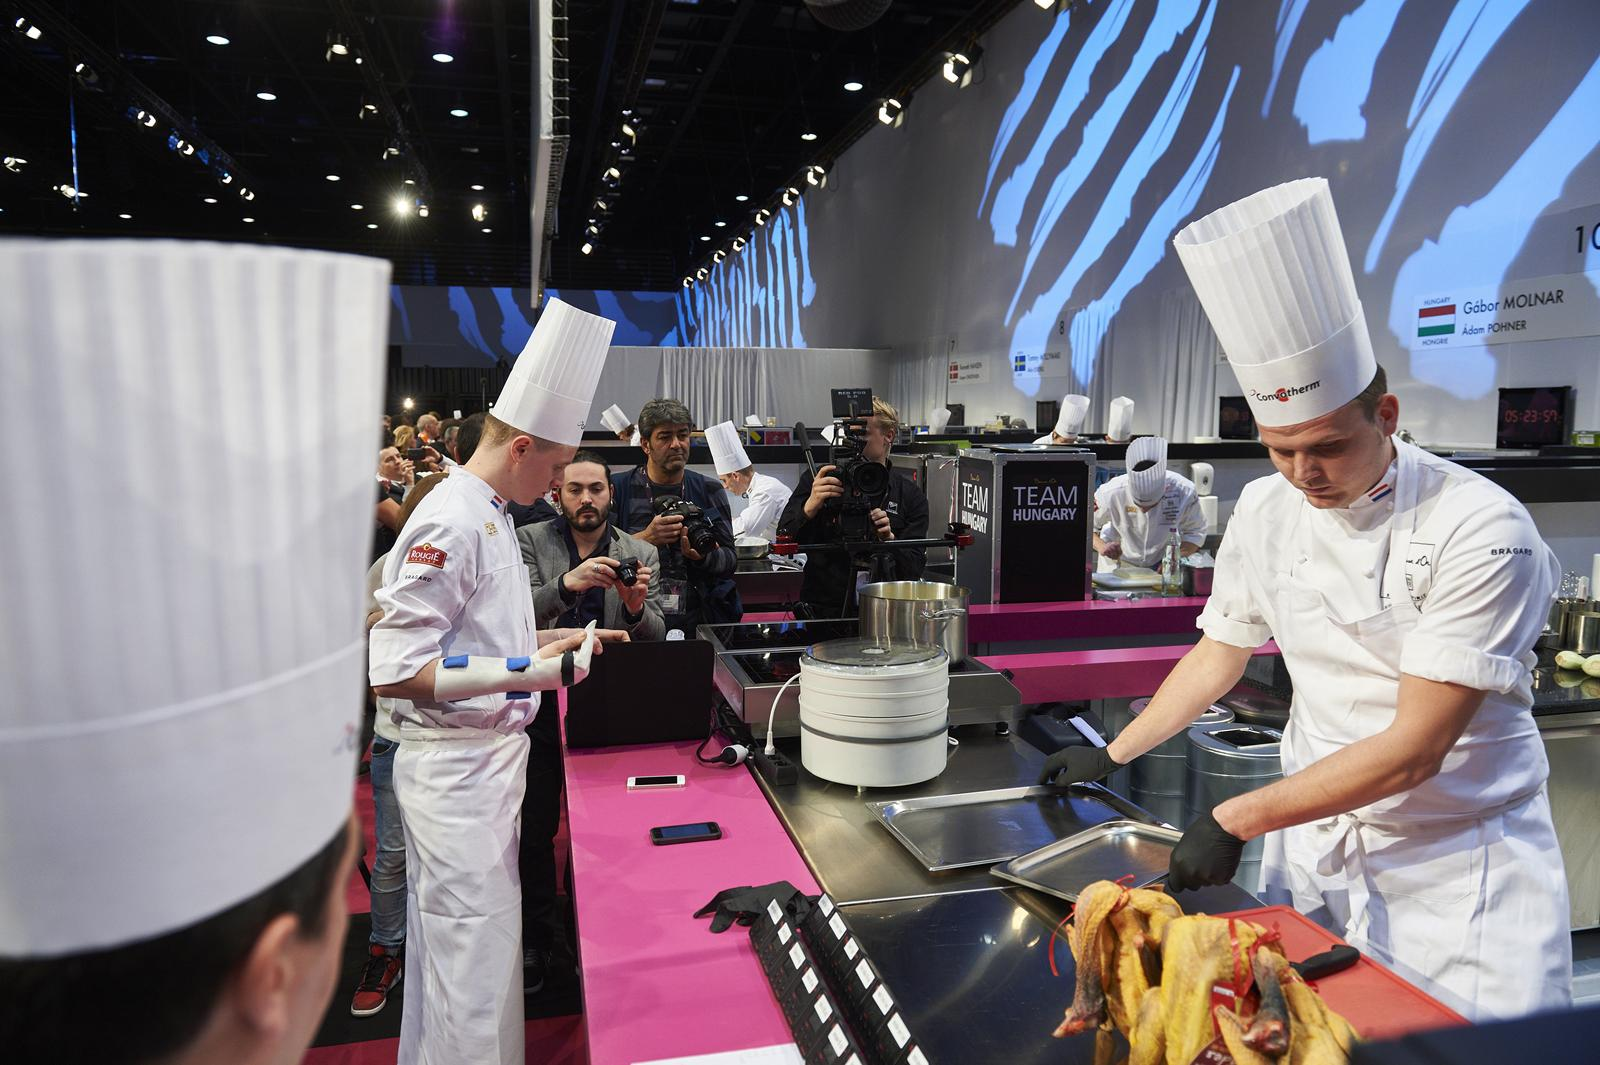 Bocuse-dor-new-zealand-gallery-24